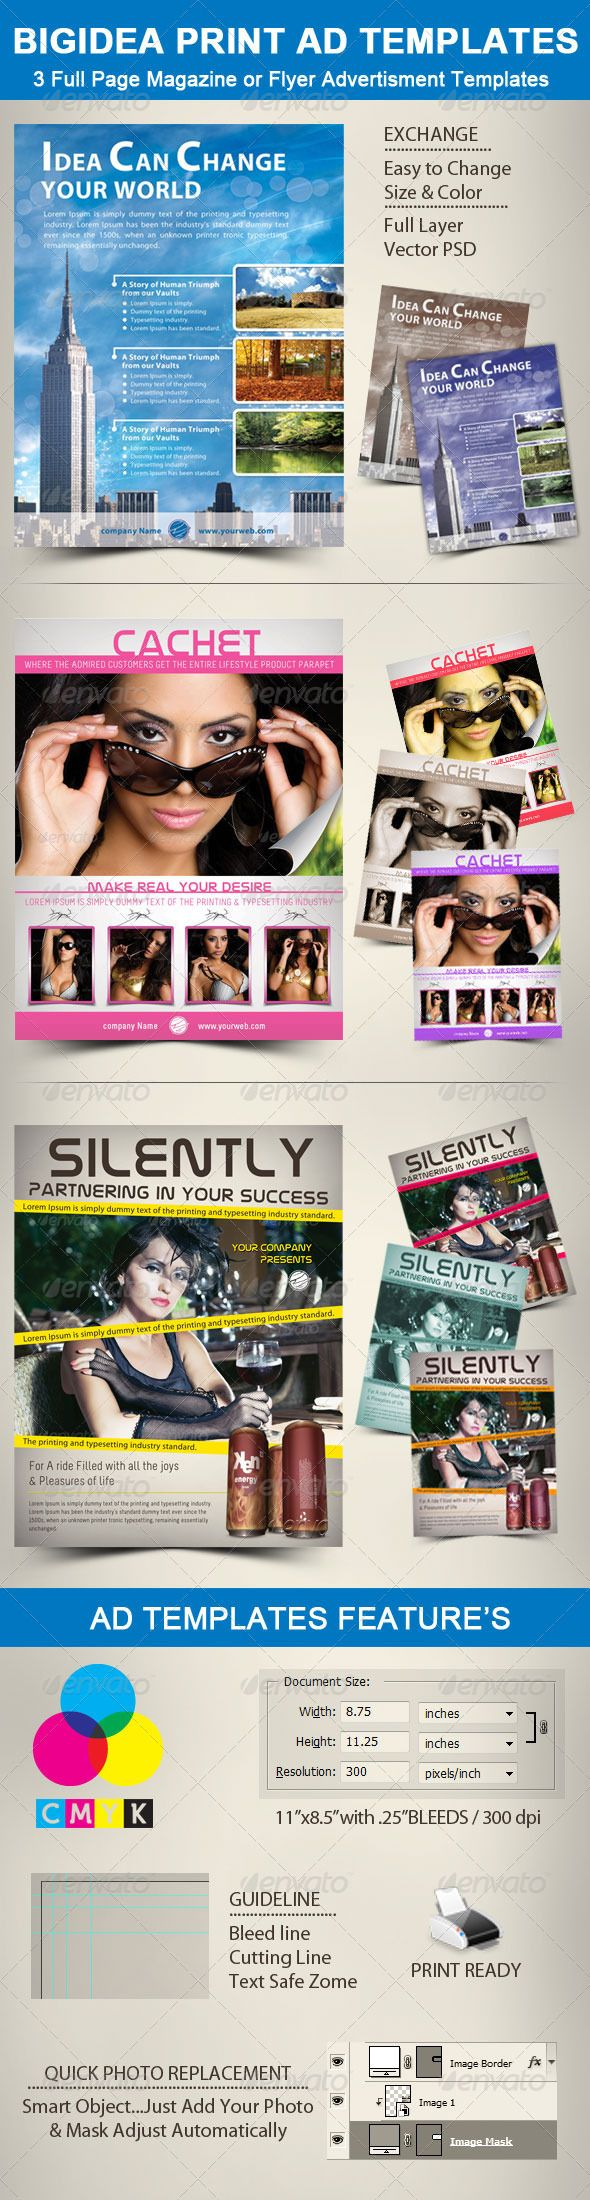 bigidea print ad templates photographs layer style and icons bigidea print ad templates graphicriver 3 print ad templates for full page magazine layouts